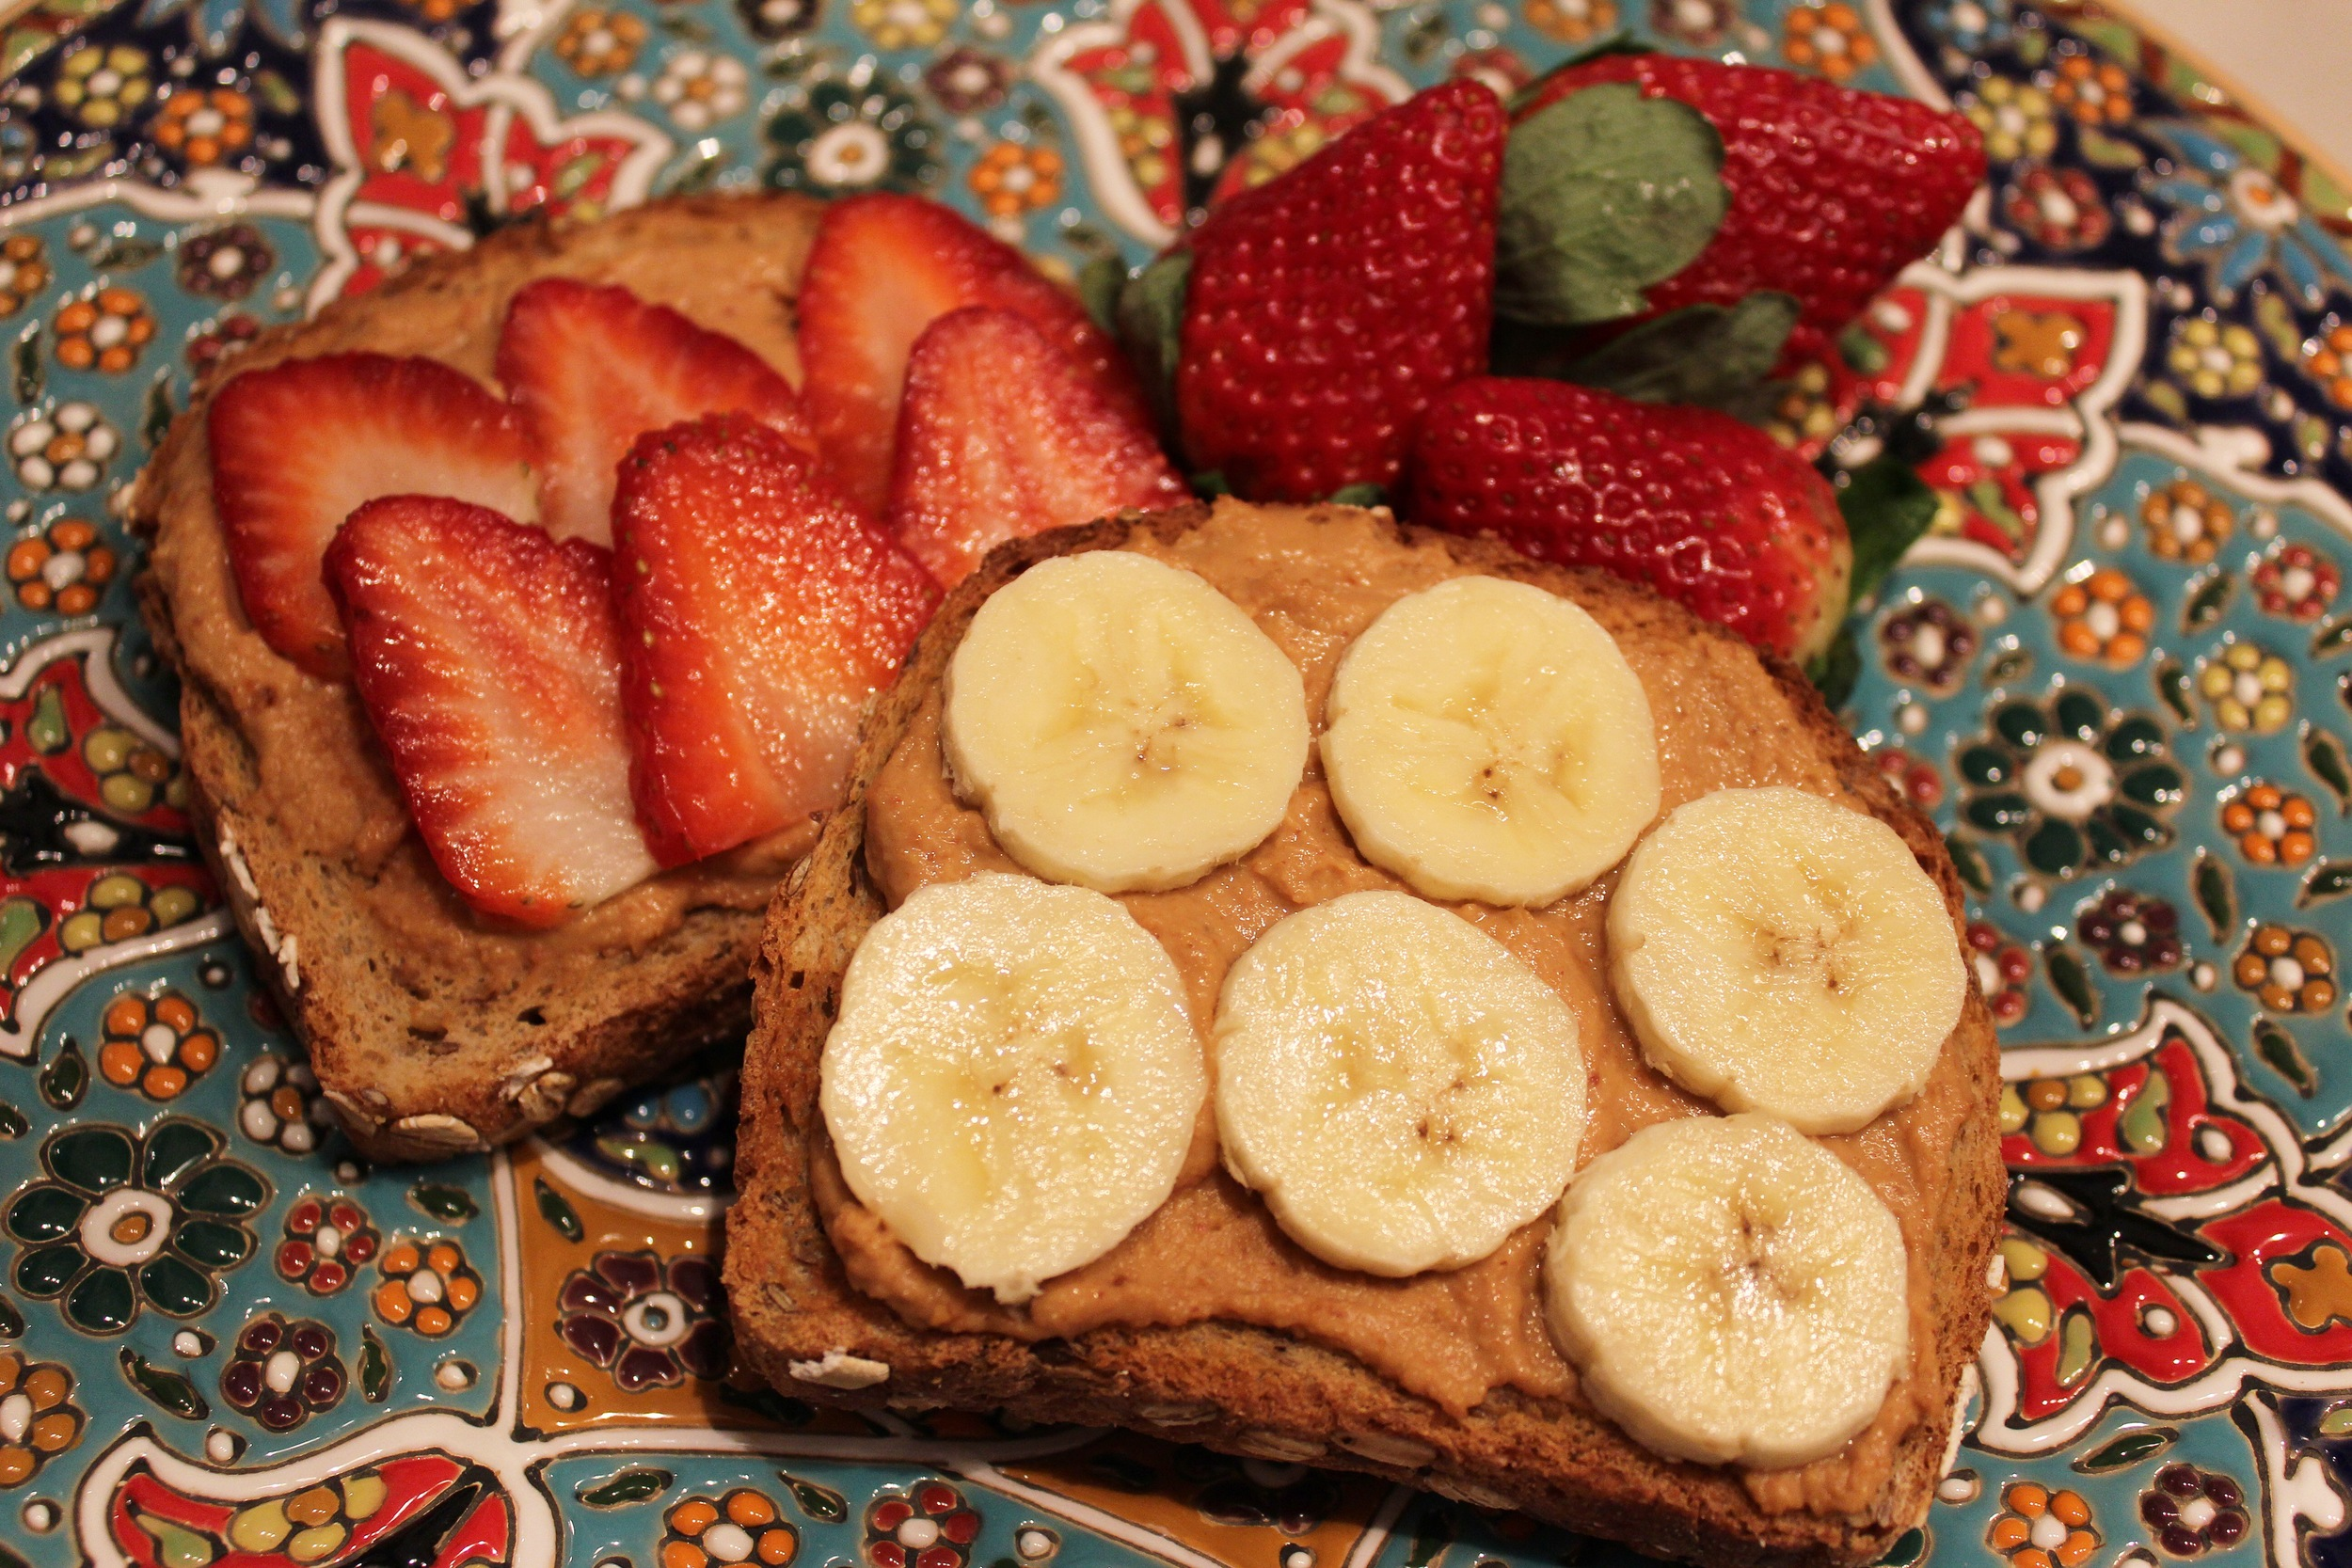 Strawberry and BananaPeanutButter Breakfast Sandwiches.